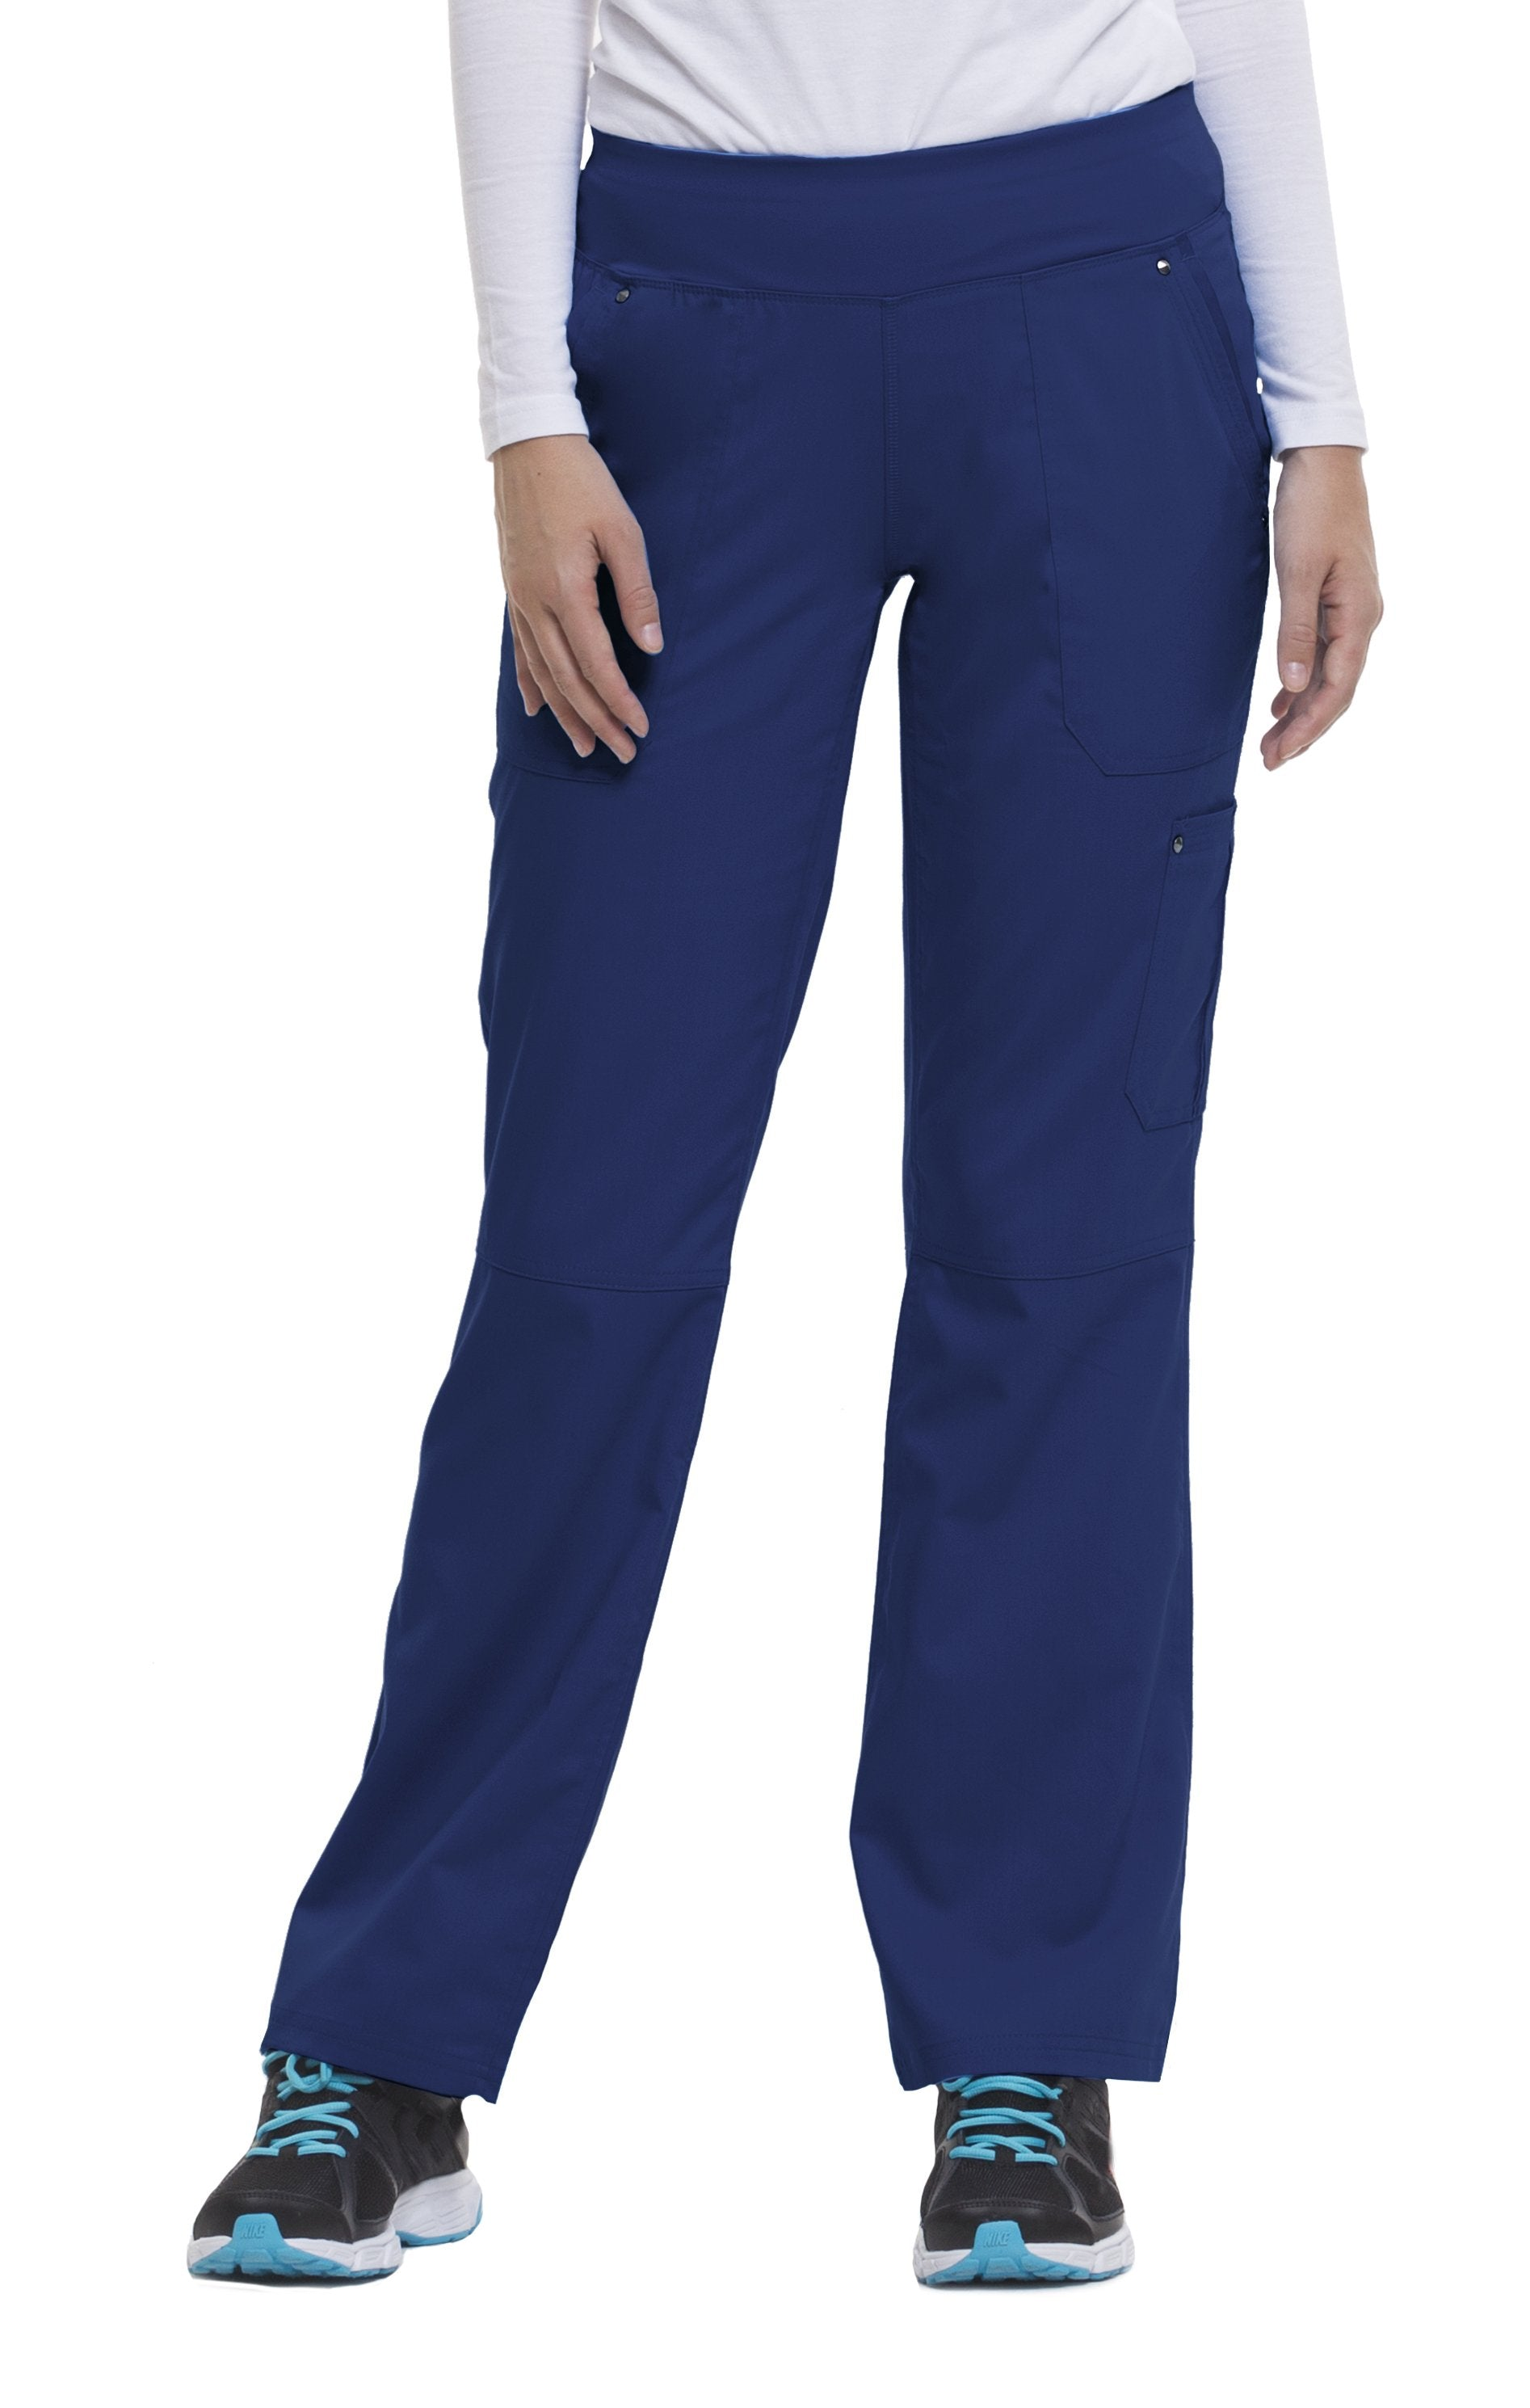 Healing Hands Purple Label YOGA 9133 Tori Pant